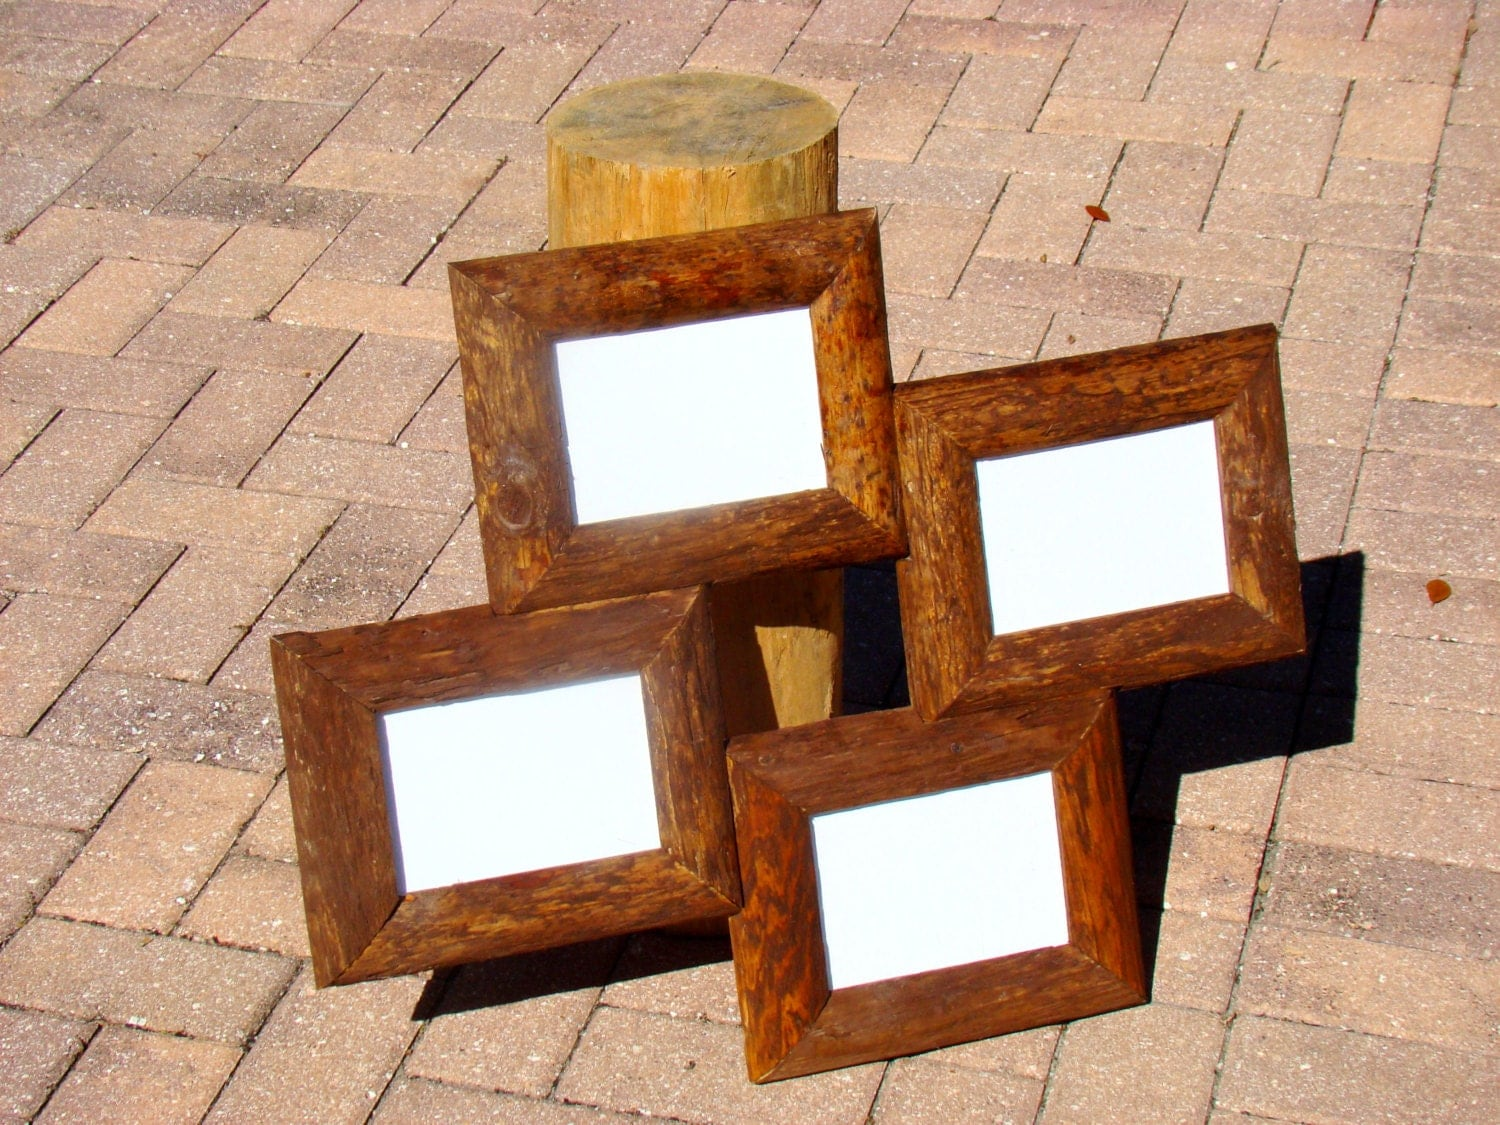 4 opening picture frame for 4x6 photos or 5x7 photos rustic. Black Bedroom Furniture Sets. Home Design Ideas